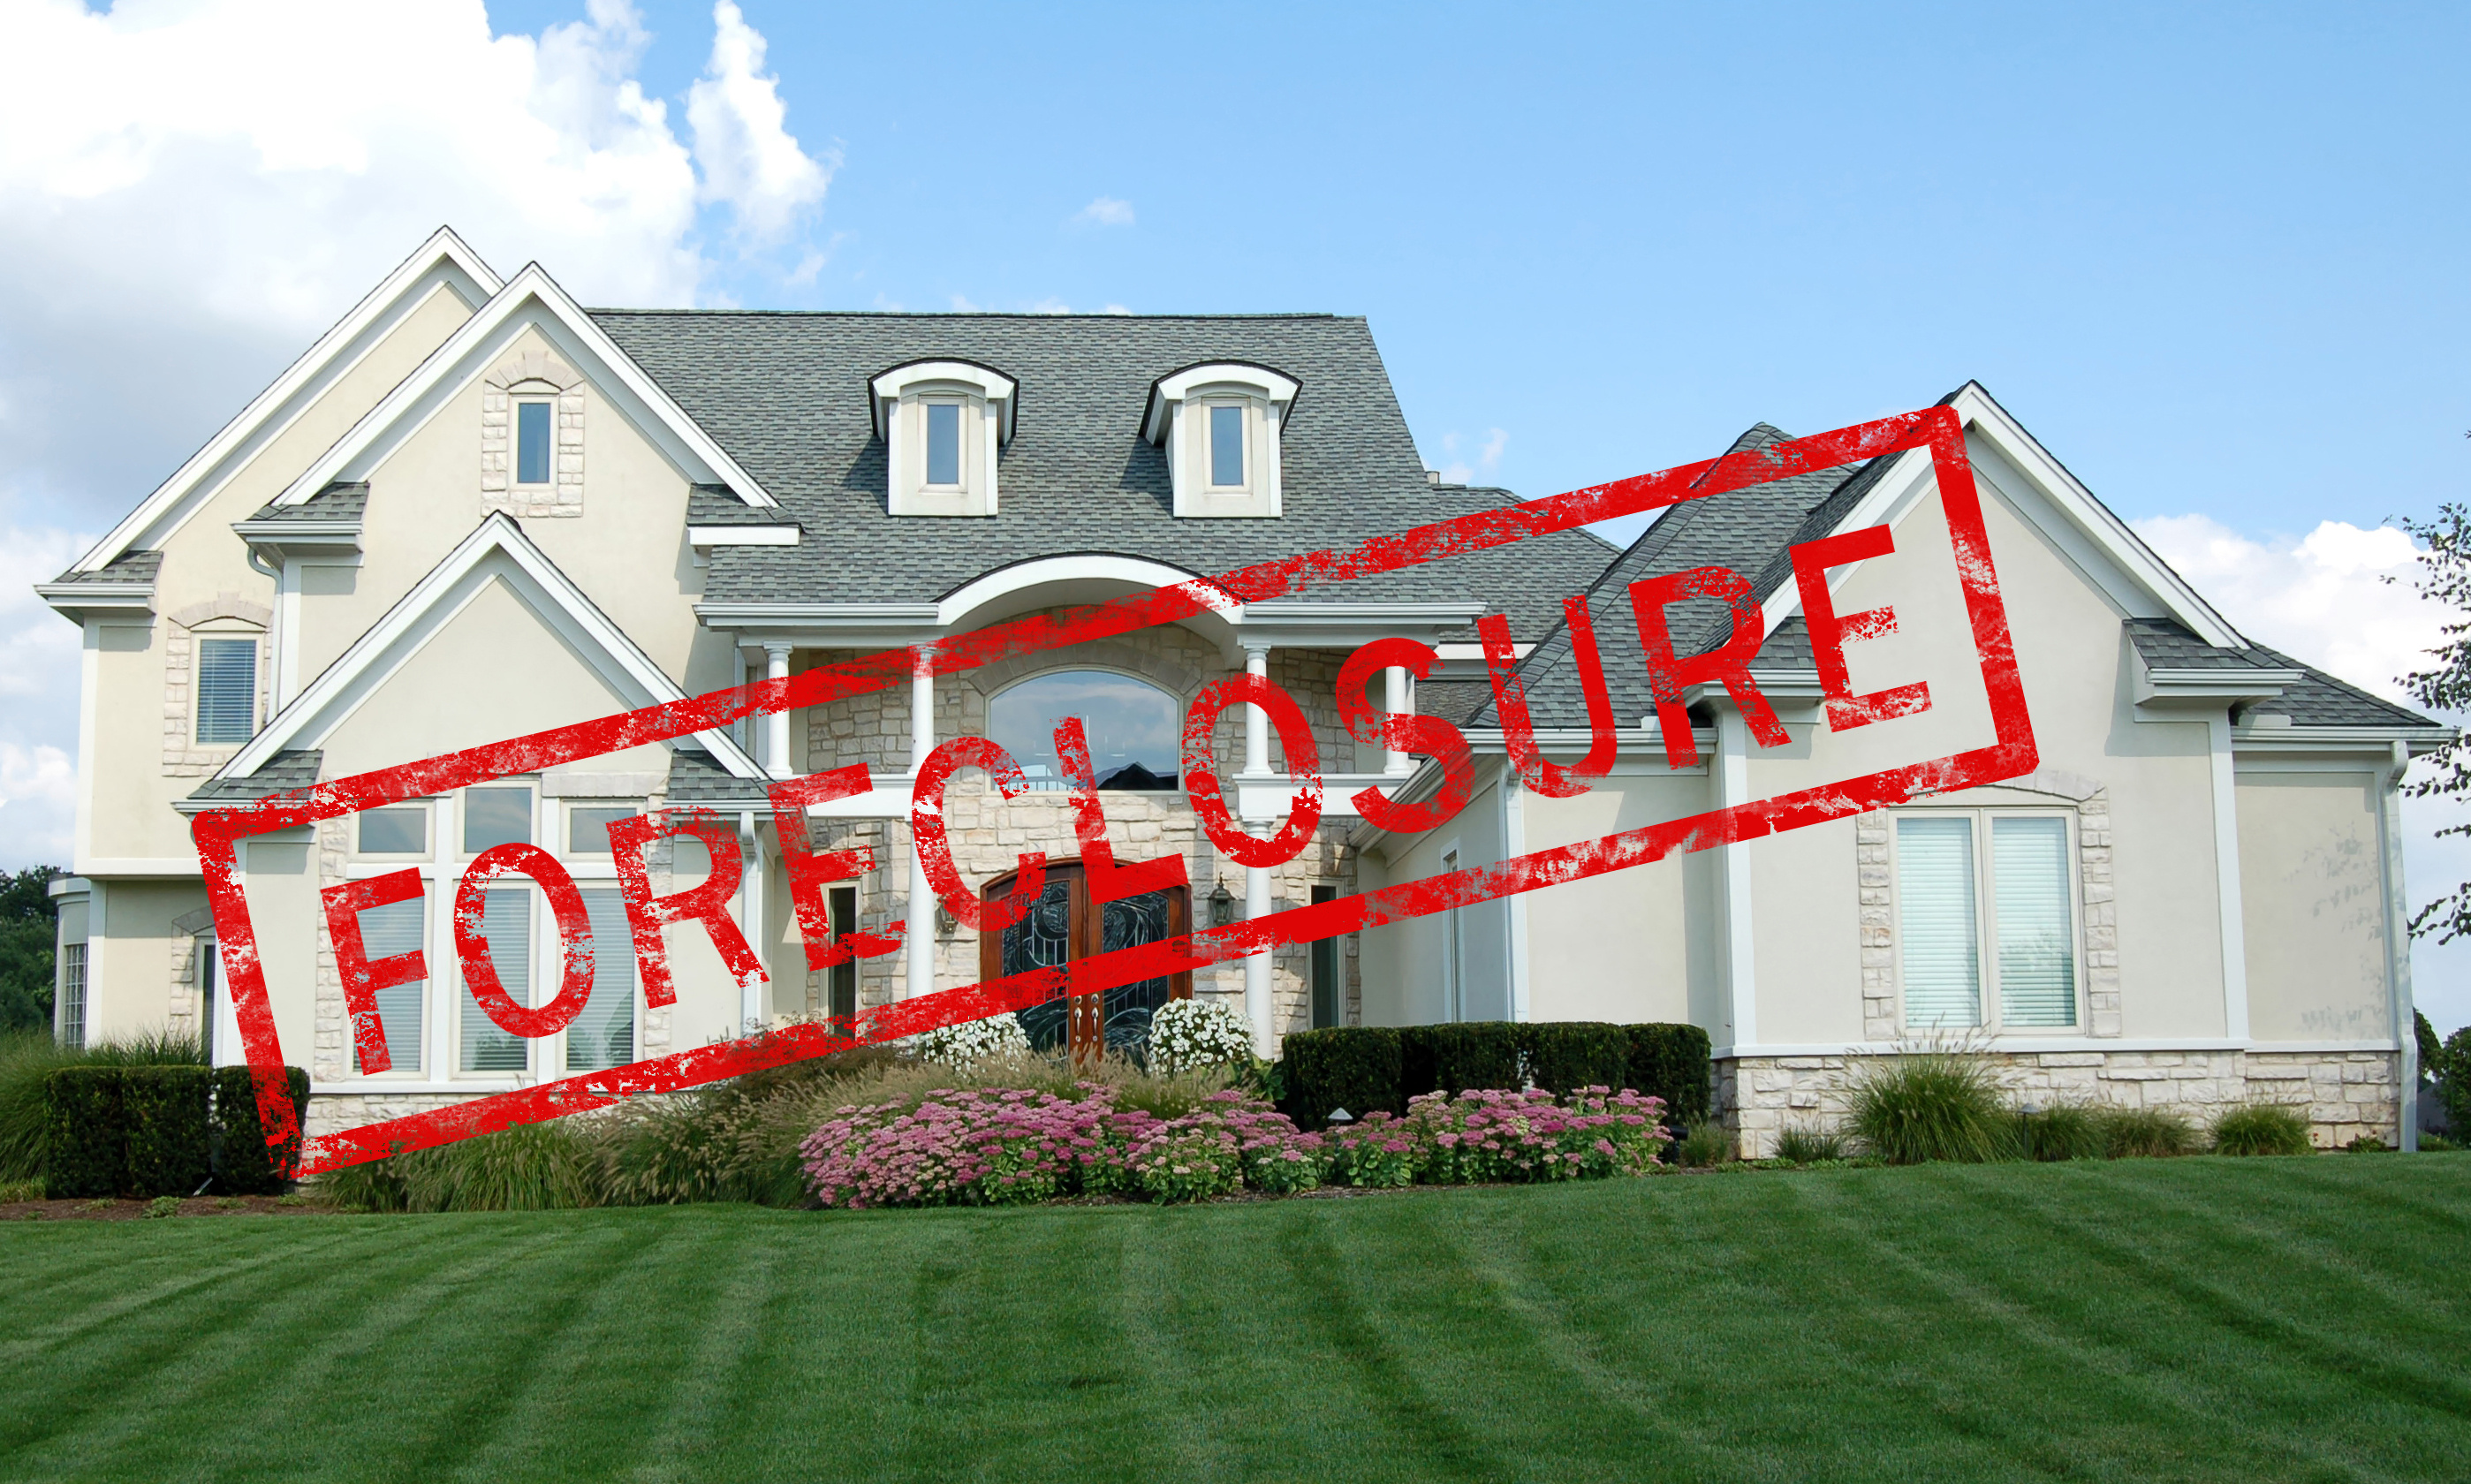 Call Culling Appraisal Corp to order valuations for Dupage foreclosures